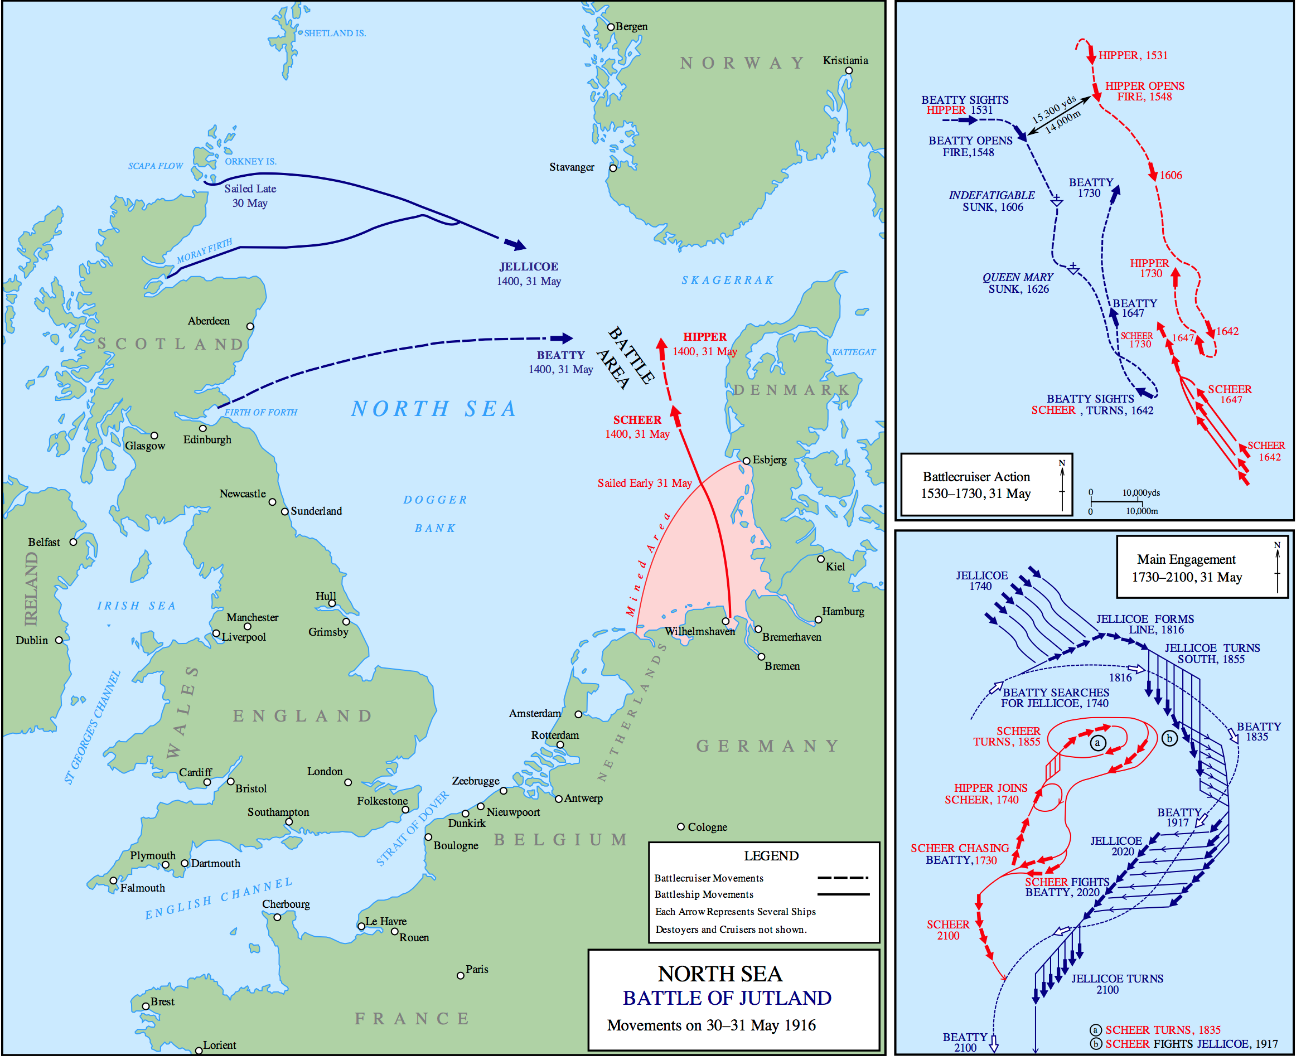 The Battle of Jutland: the biggest naval fight of World War I